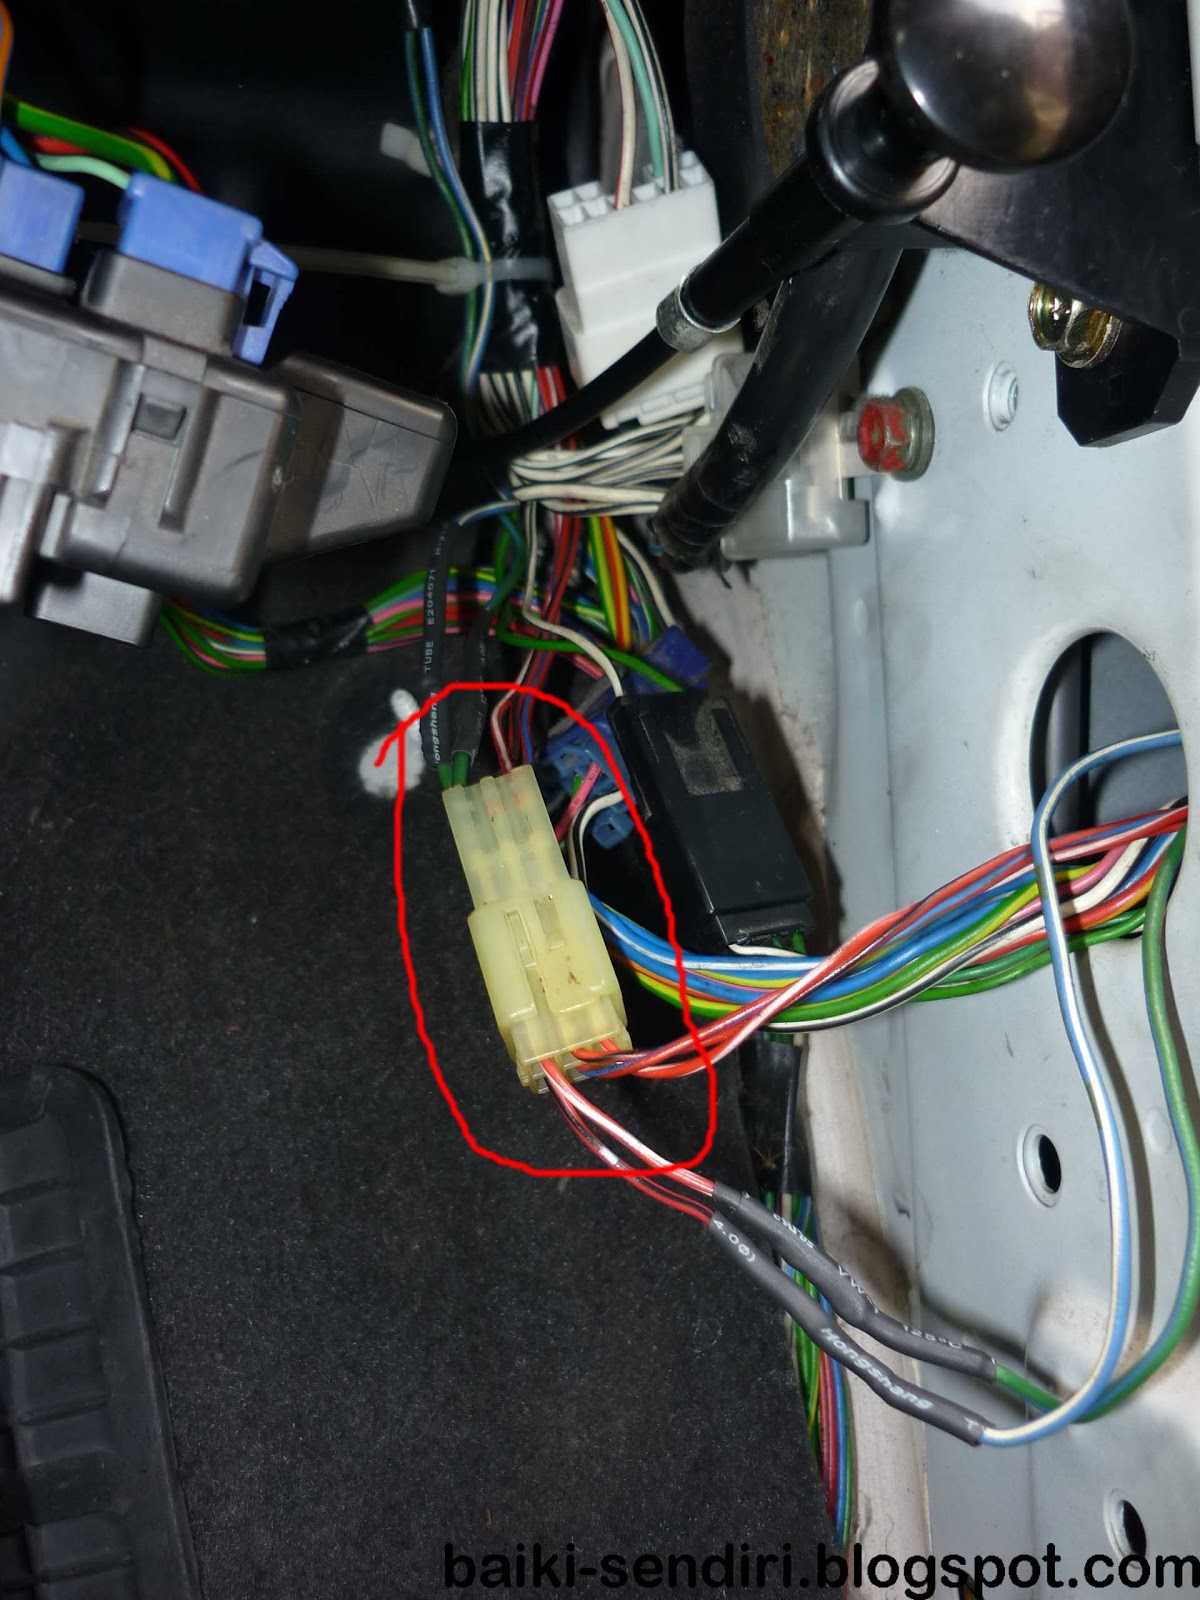 hight resolution of daihatsu mira l7 wiring diagram wiring library outlet wiring diagram daihatsu mira l7 wiring diagram